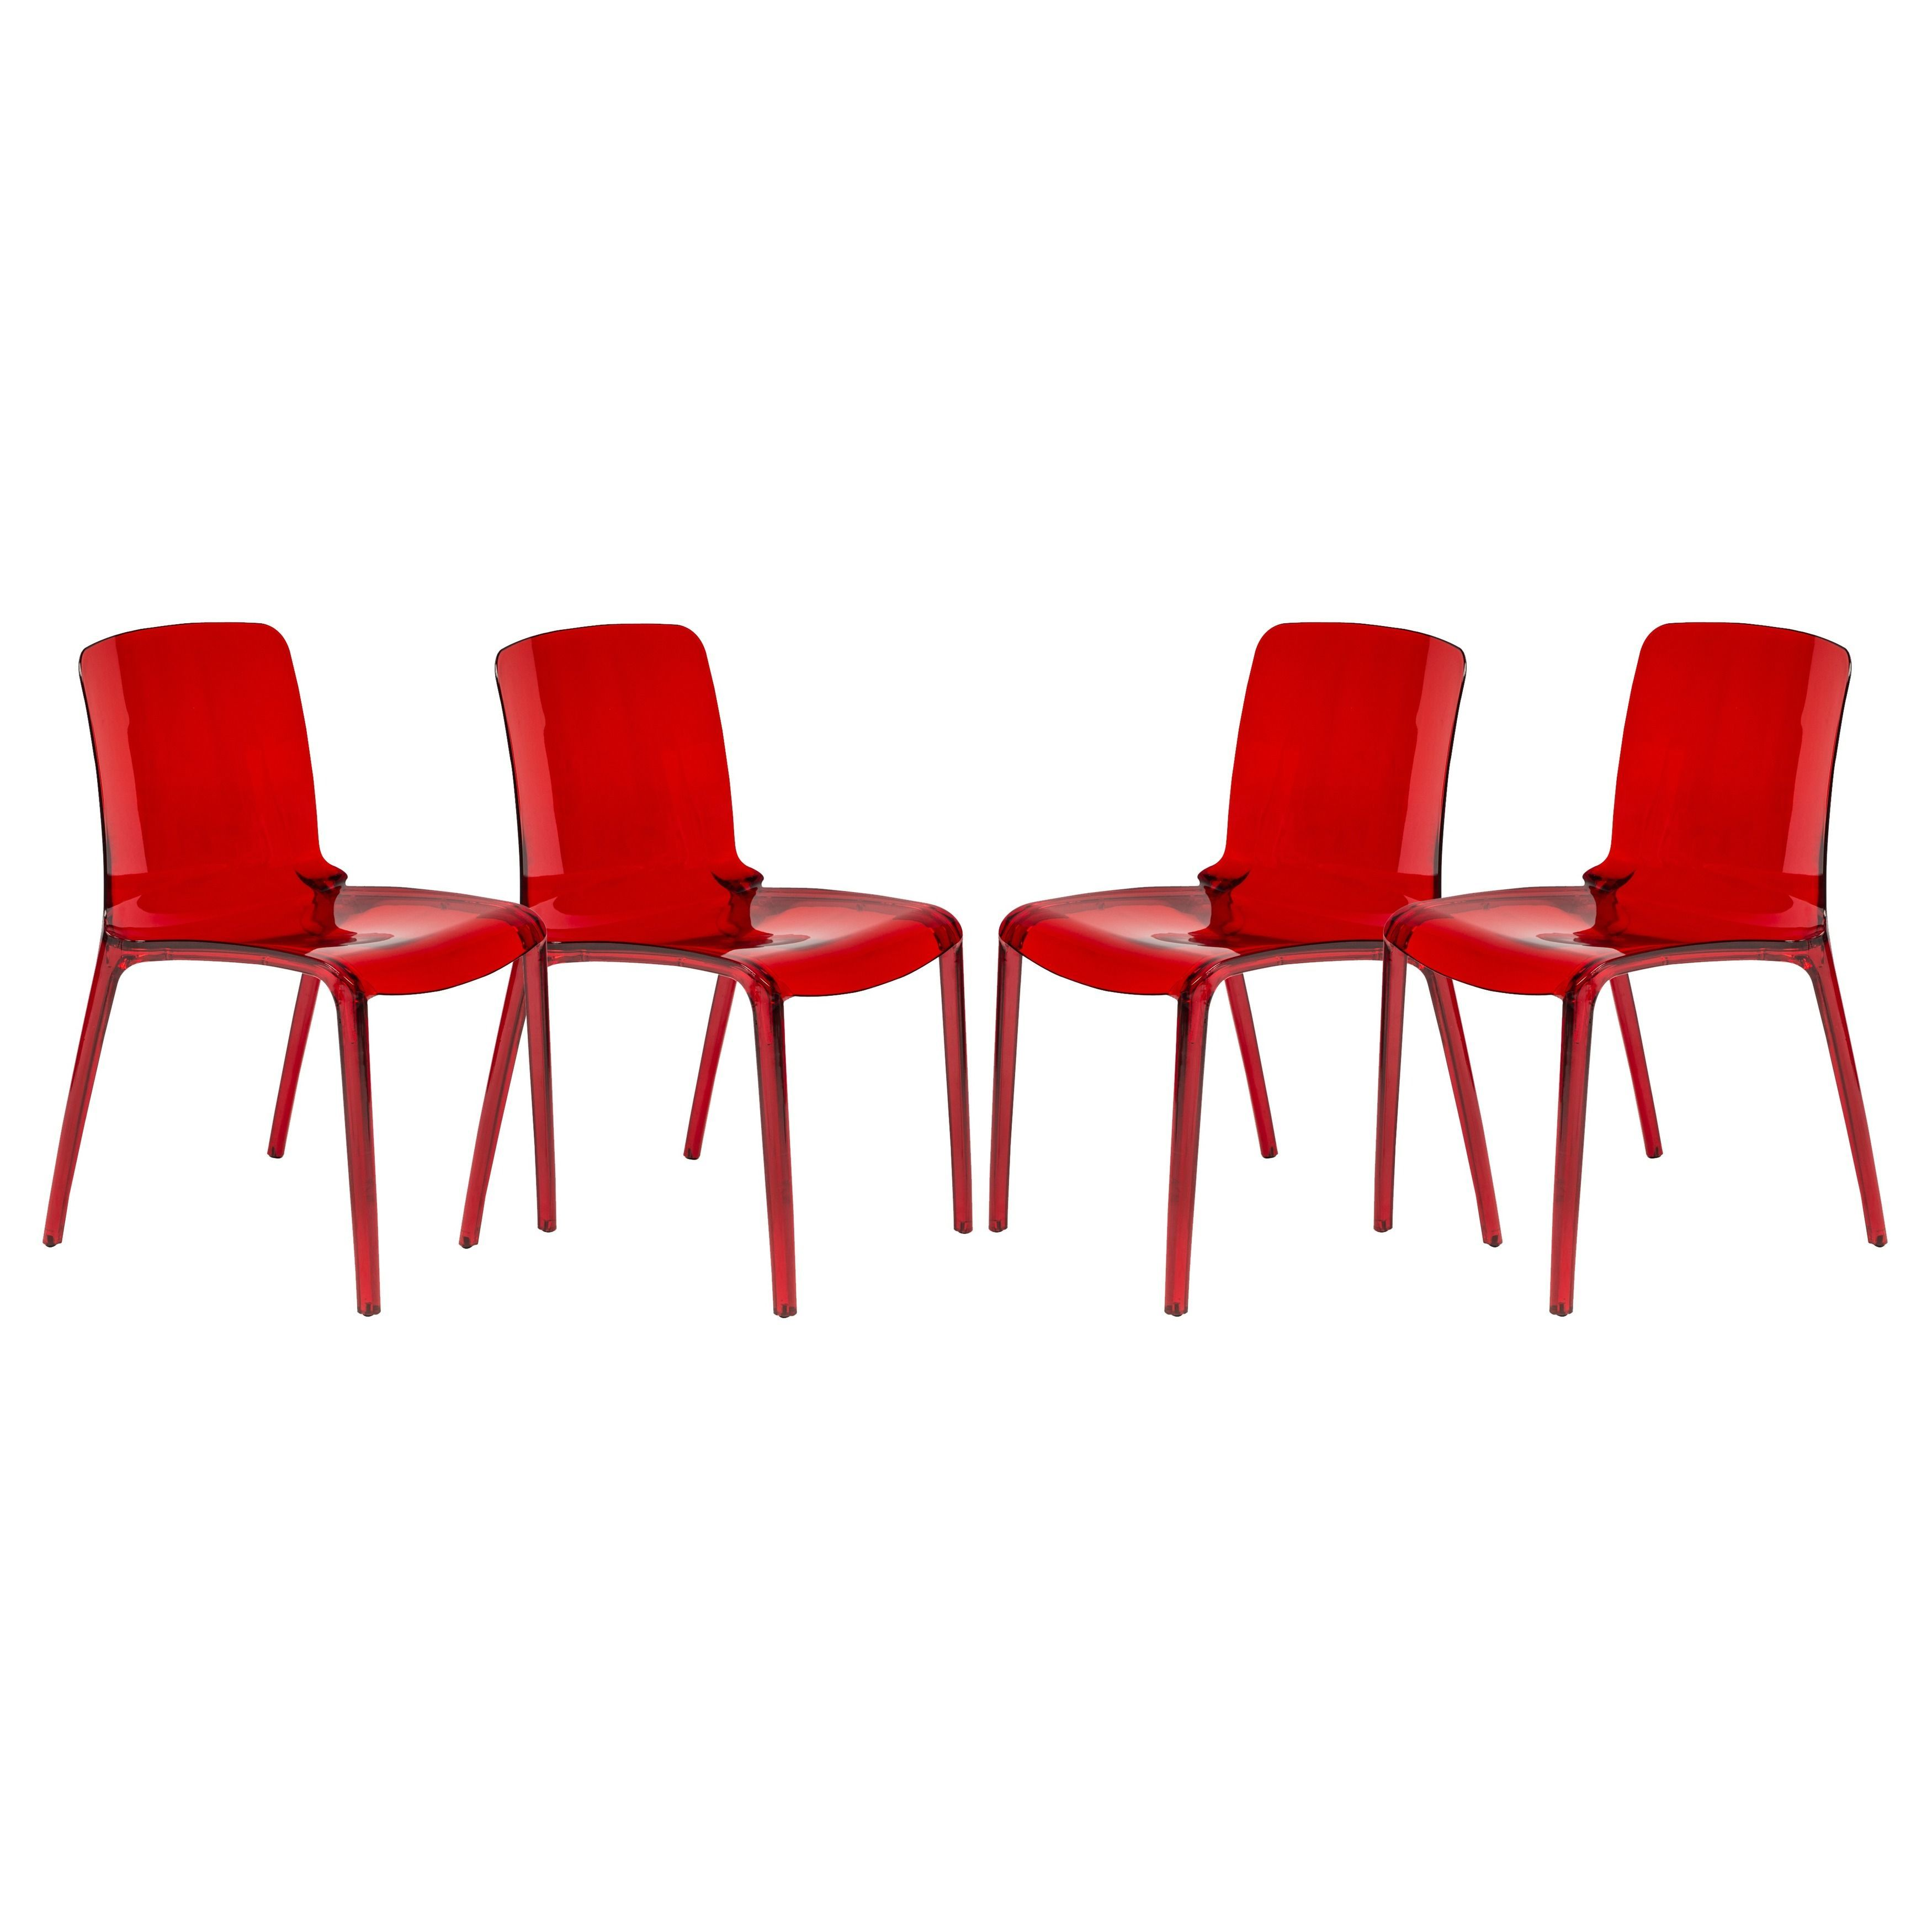 LeisureMod Laos Transparent Red Dining Chairs Set of 4 Laos